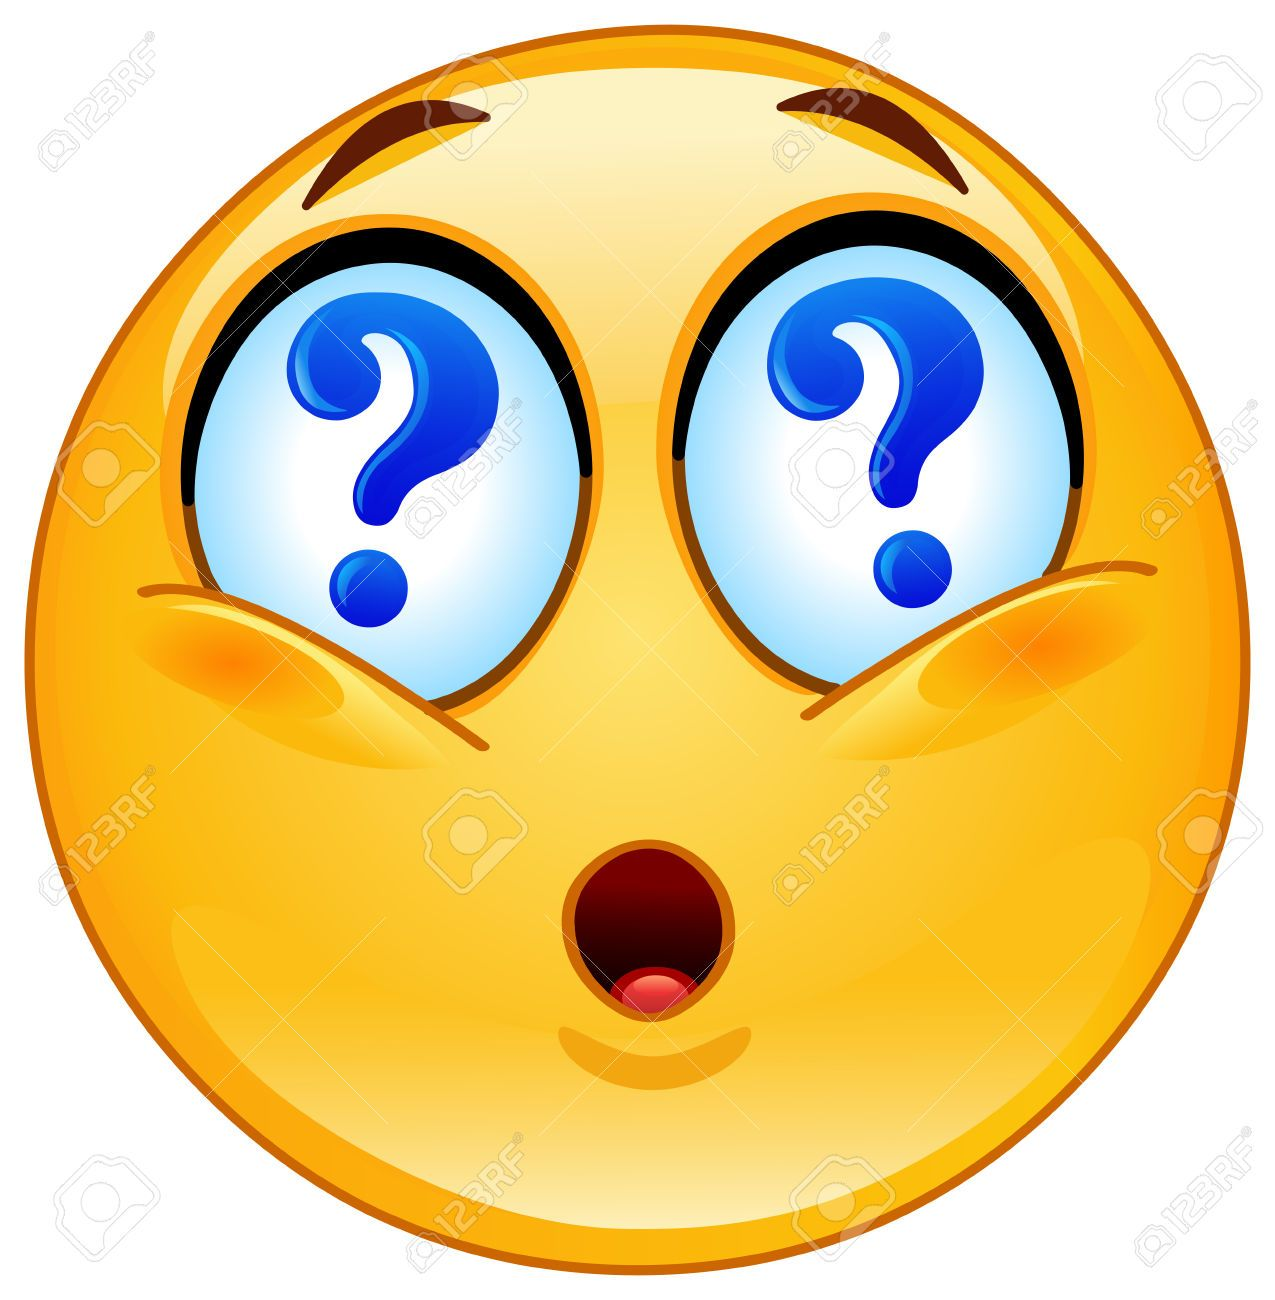 Smiley question cerca amb google emojis pinterest smiley highly questionable copy send share send in a message share on a timeline or copy and paste in your comments buycottarizona